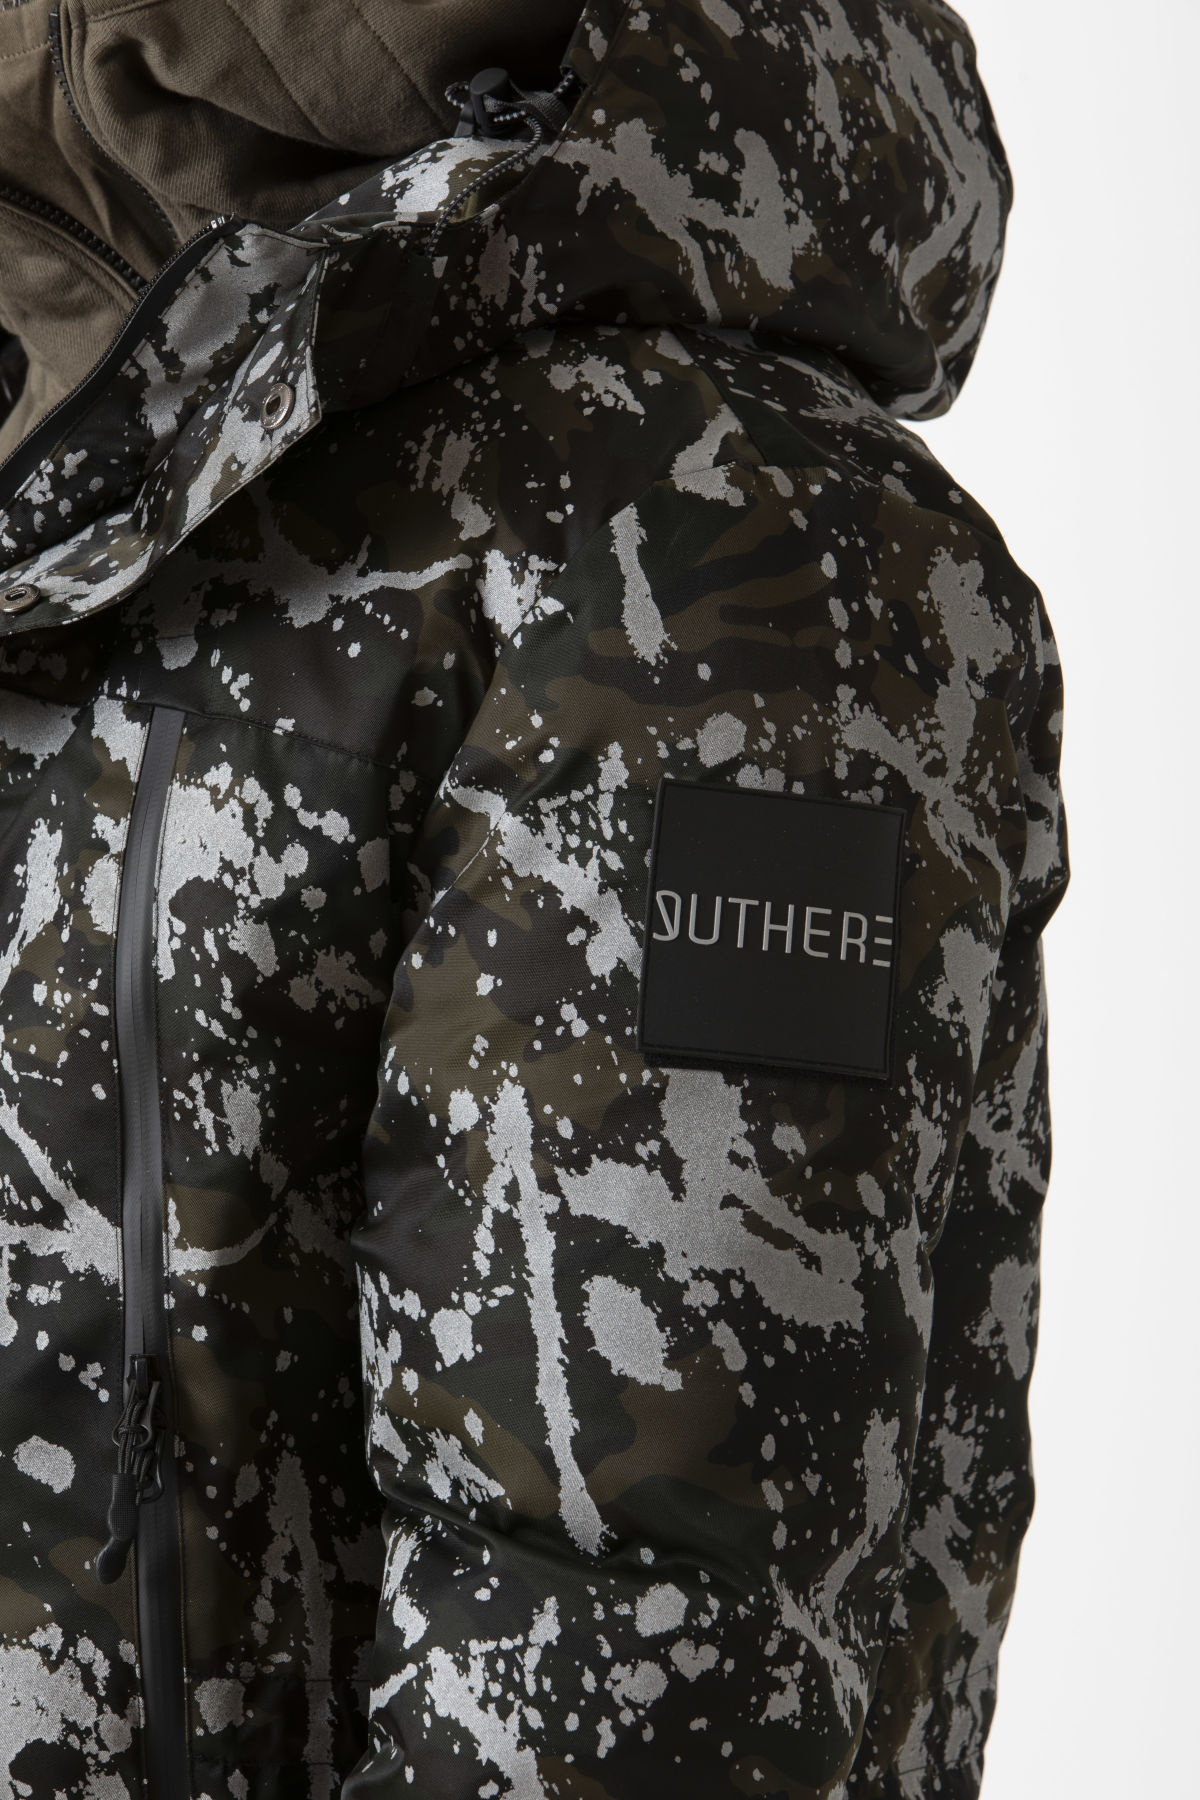 ABSTRACT X Jacket for man OUTHERE F/W 19-20